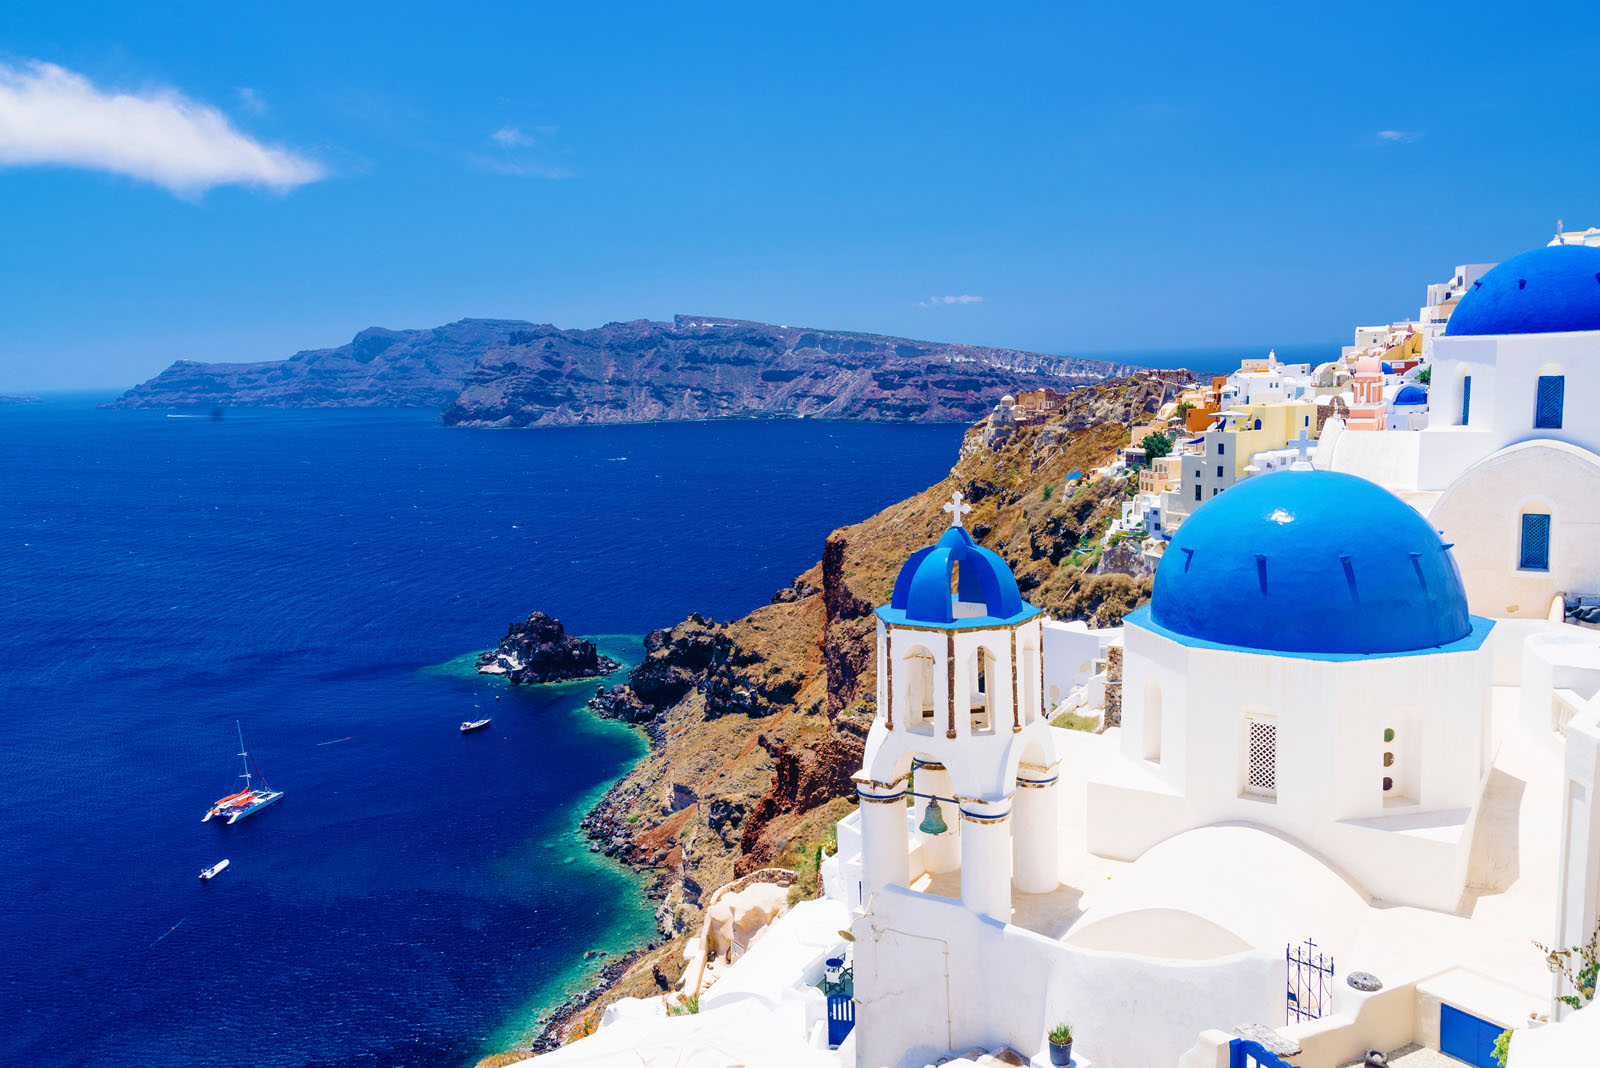 View of Santorini, Greece